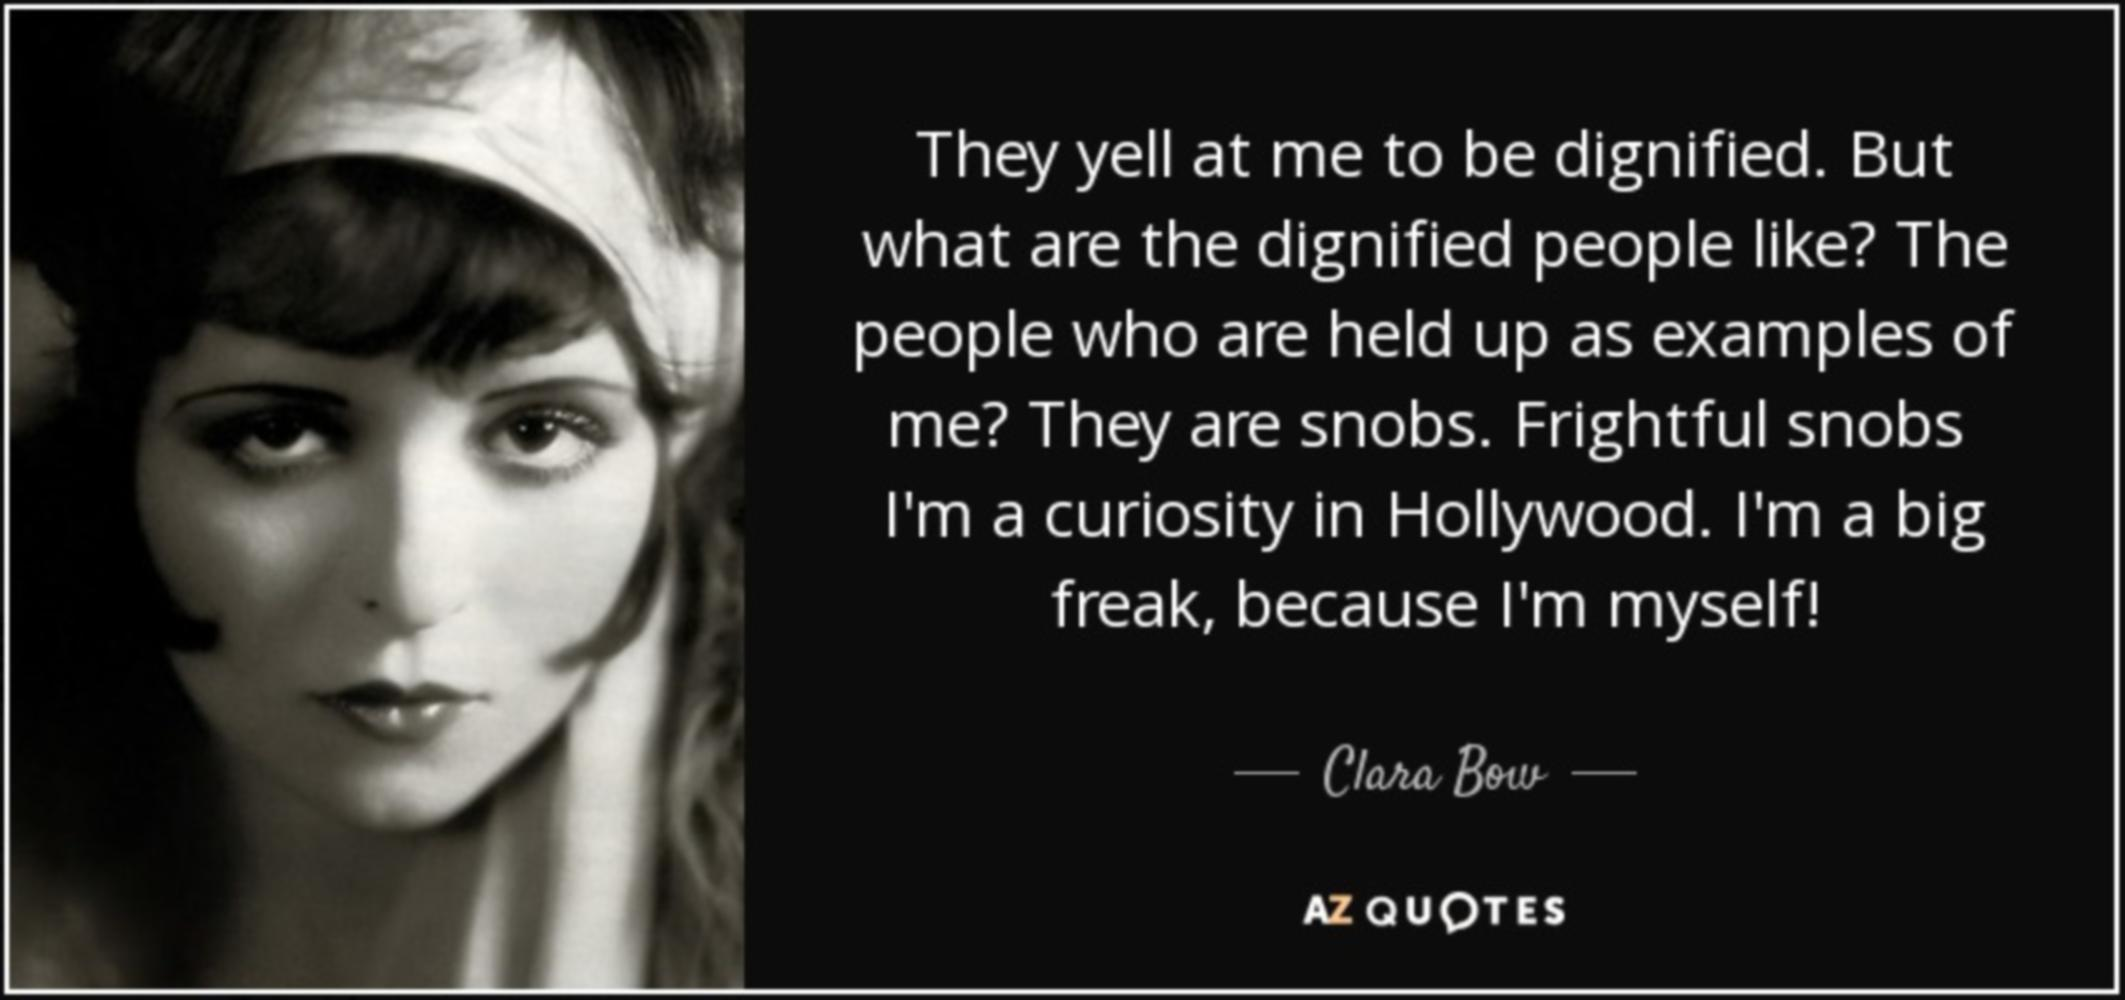 Clara Bow is Undignified